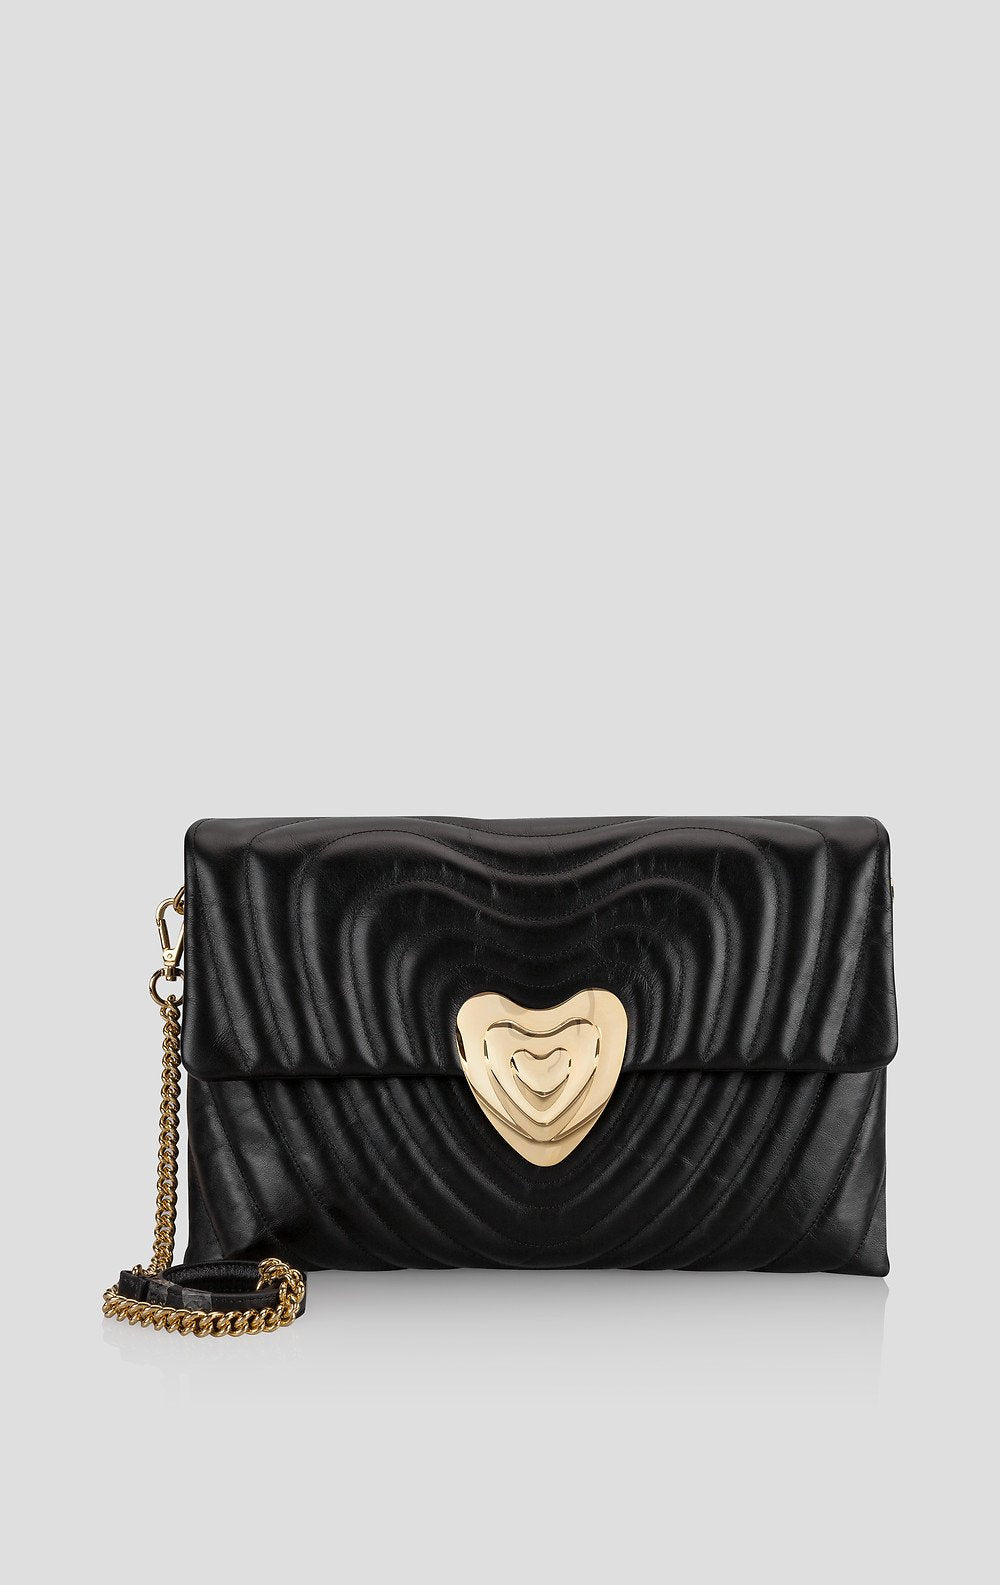 ESCADA Big Leather Heart Bag